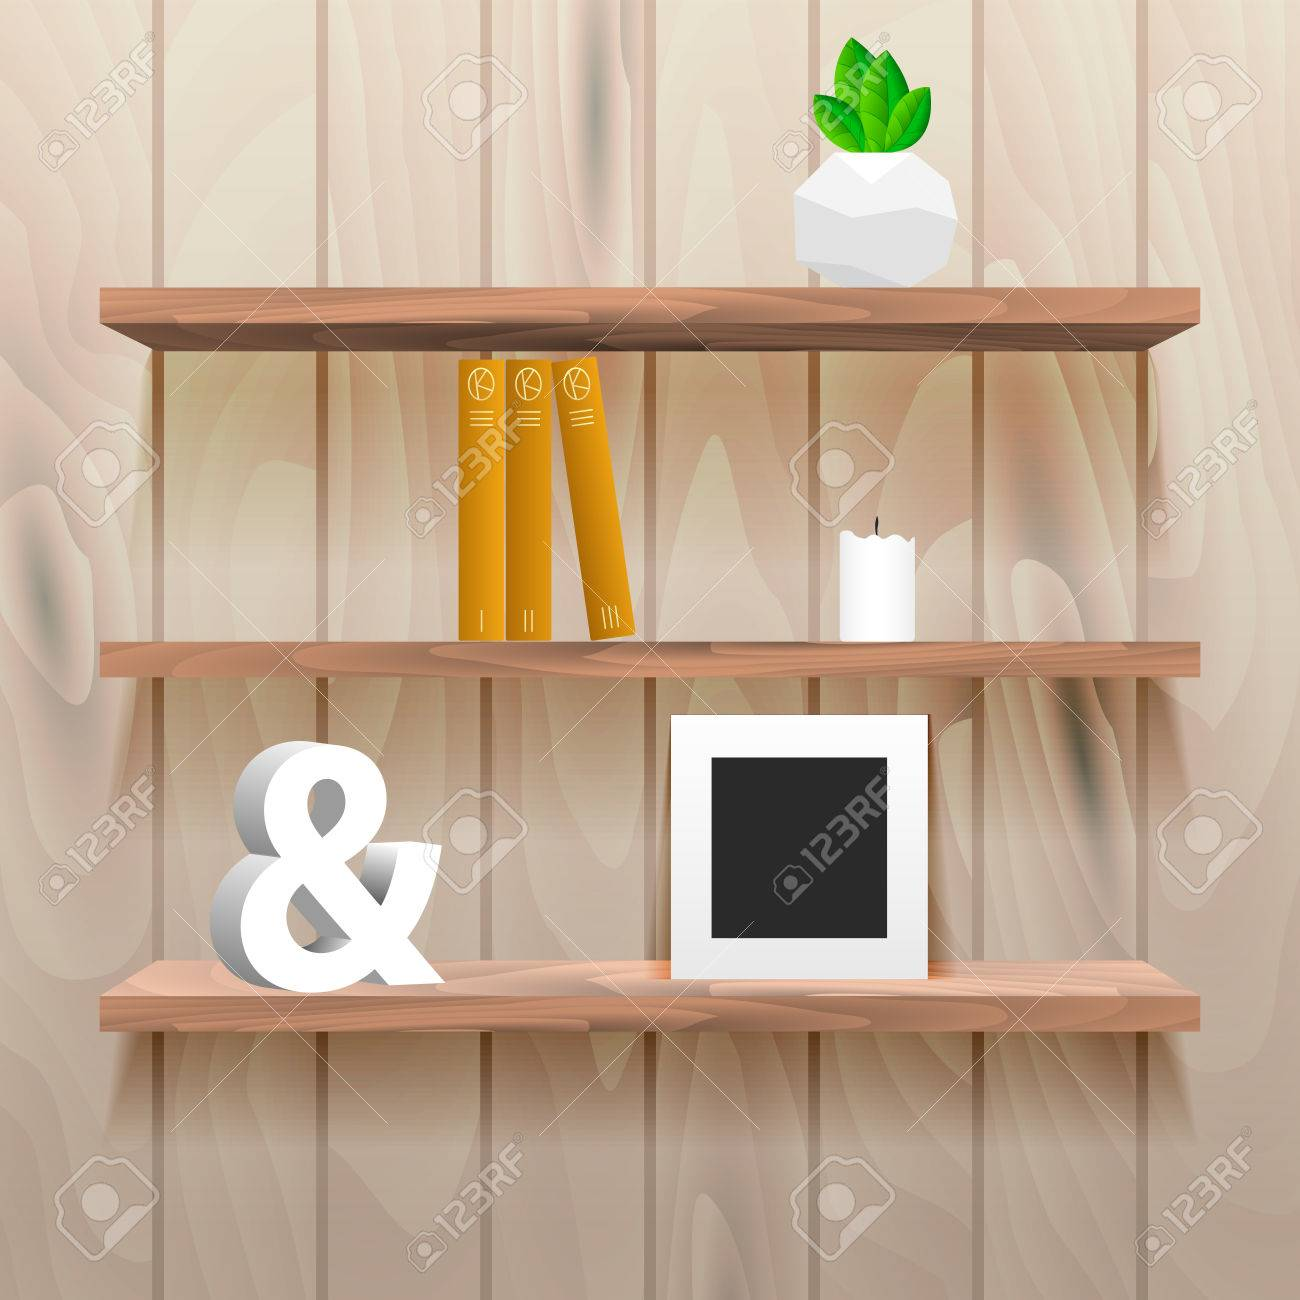 Interior wooden shelves free vector - Book Shelves In Room Interior With Decor Realistic Natural Wood Wall With Storage For Decor